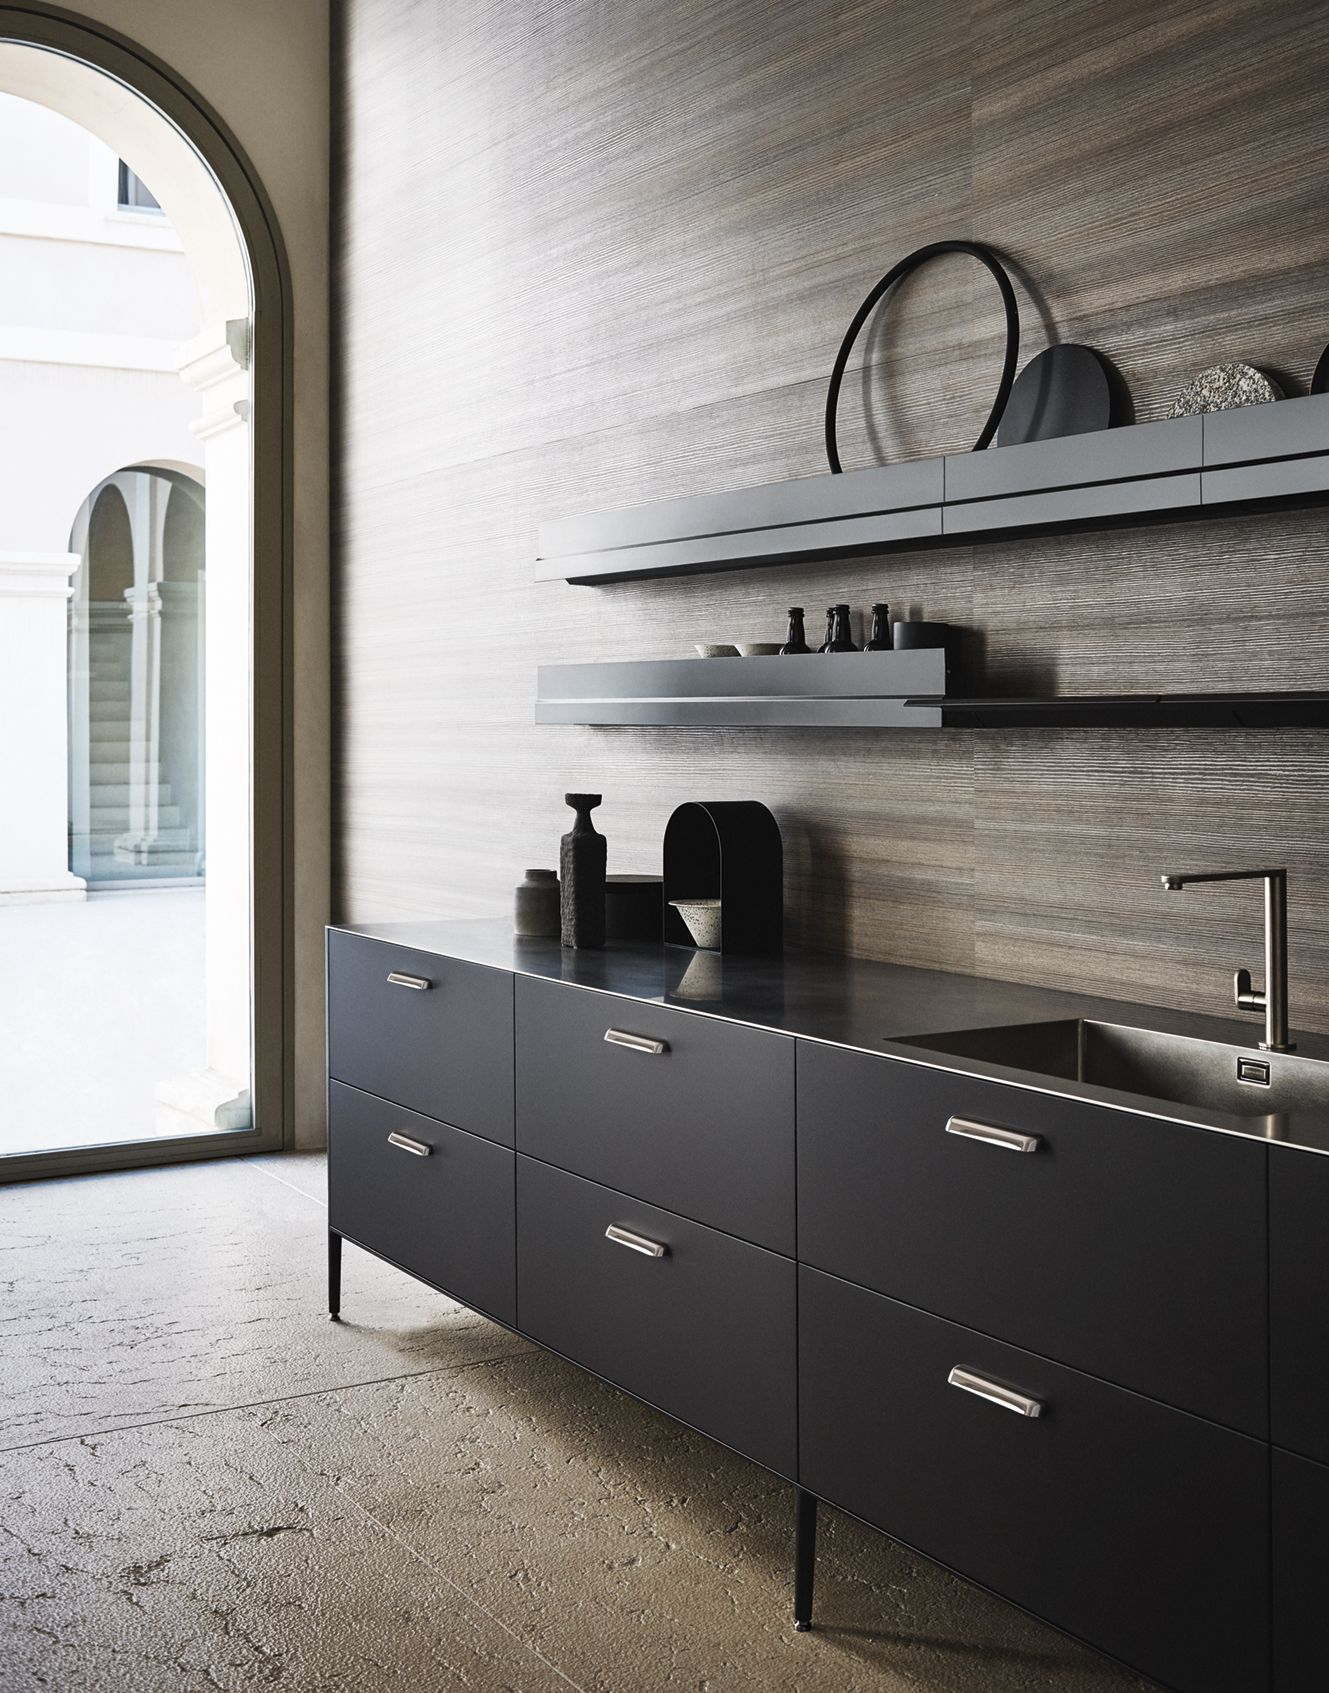 This Dark Kitchen Cabinets Gives A Sleek And Professional Look Combined With A Light Neutral Livi Luxury Kitchens Kitchen Design Trends Interior Design Kitchen